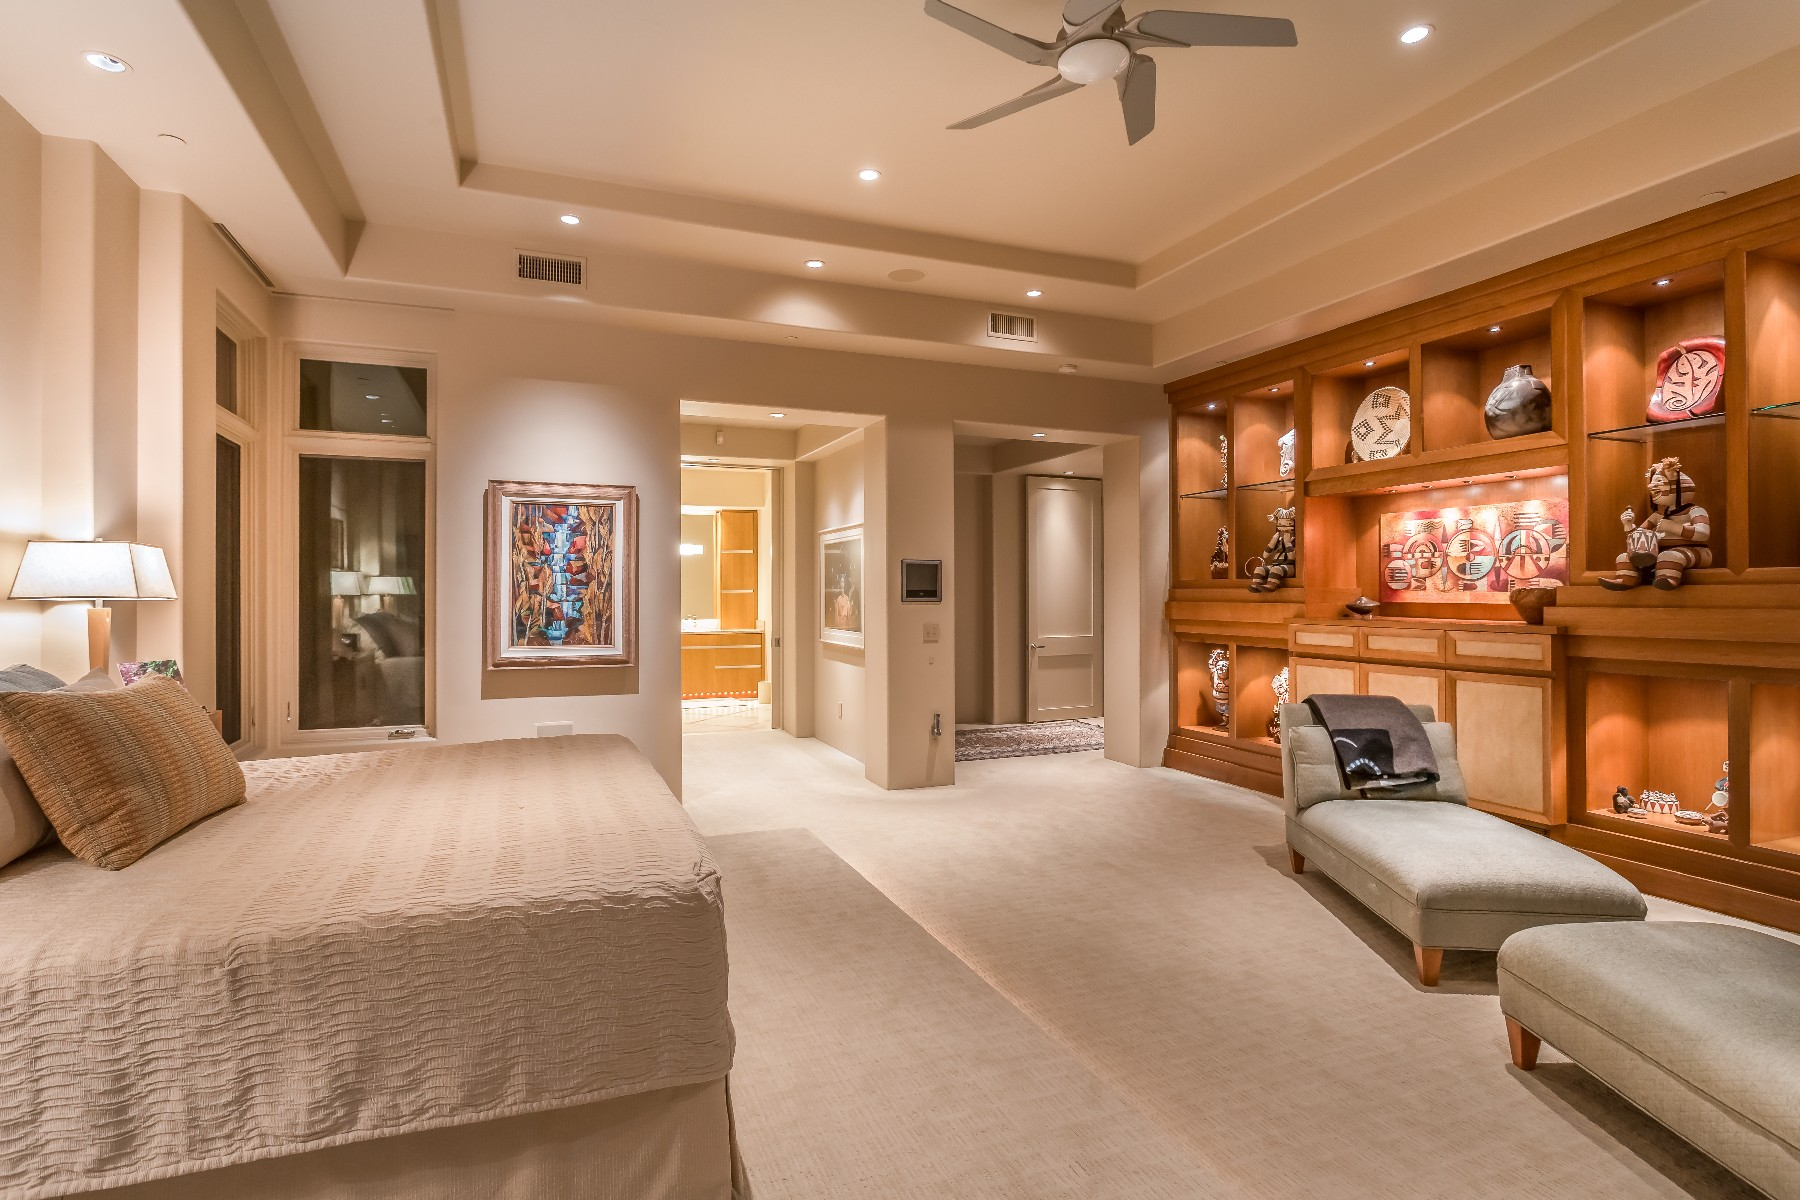 Additional photo for property listing at 14630 Calle Diegueno  Rancho Santa Fe, Калифорния 92067 Соединенные Штаты